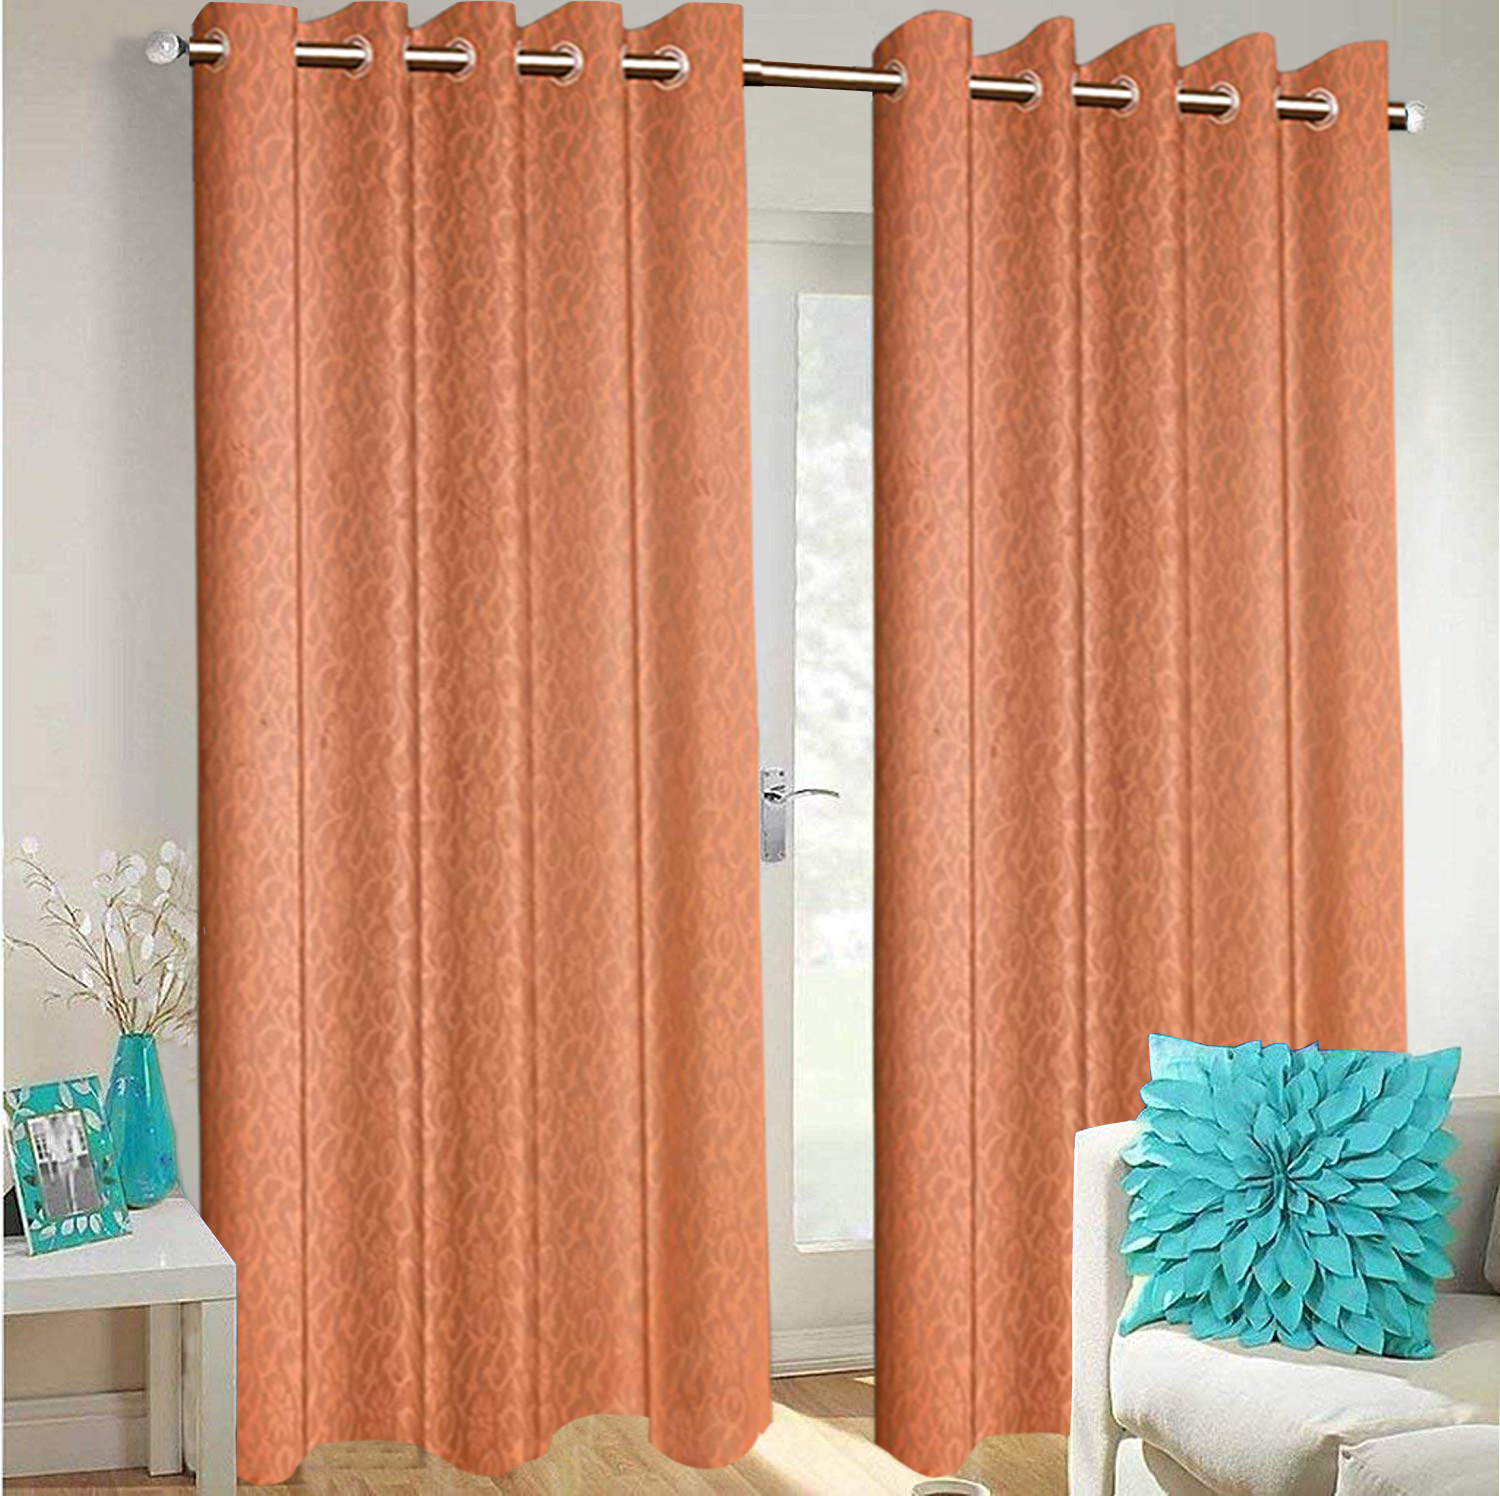 Kuber Industries Flower Design 2 Pieces Sheer Door Curtains Linen Look Semi Transparent Voile Grommet Elegance Curtains for Living Dining Room, Bedroom Drapes 48 x 84 Inch Long, (Peach) - CTKTC40529